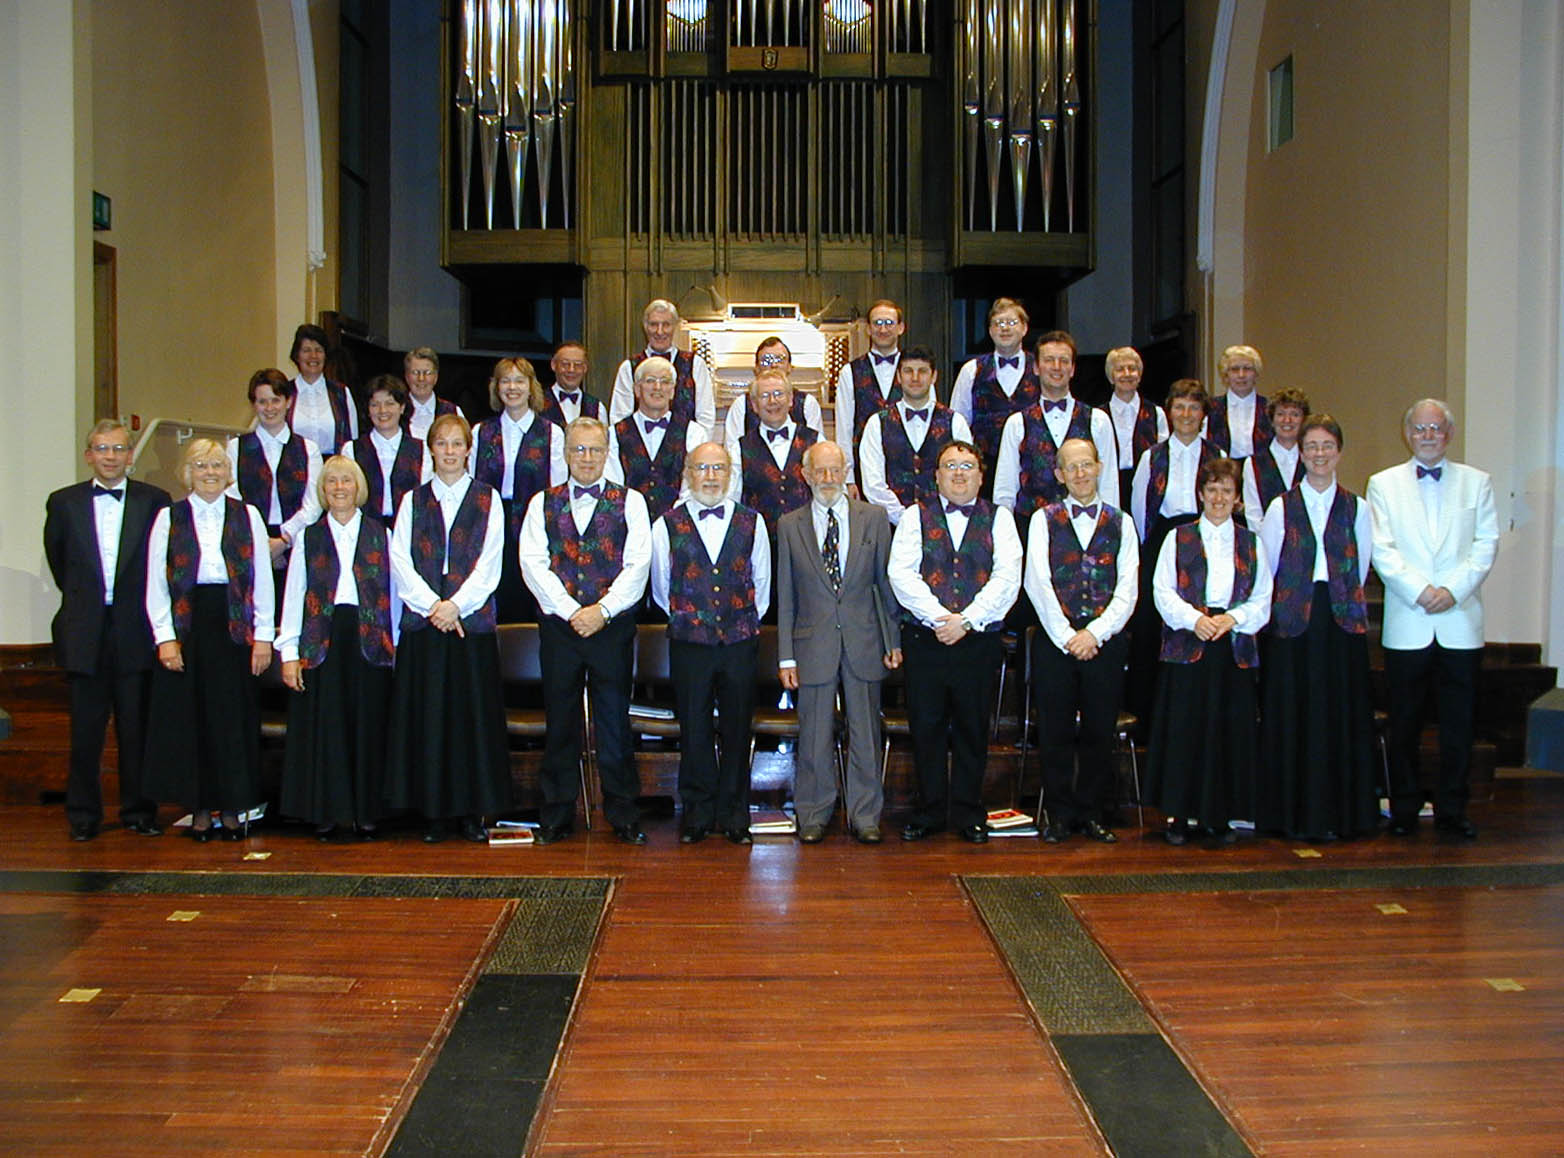 The Huddersfield Singers' 125th anniversary concert in St Paul's Hall [Photo: Richard Hallas]